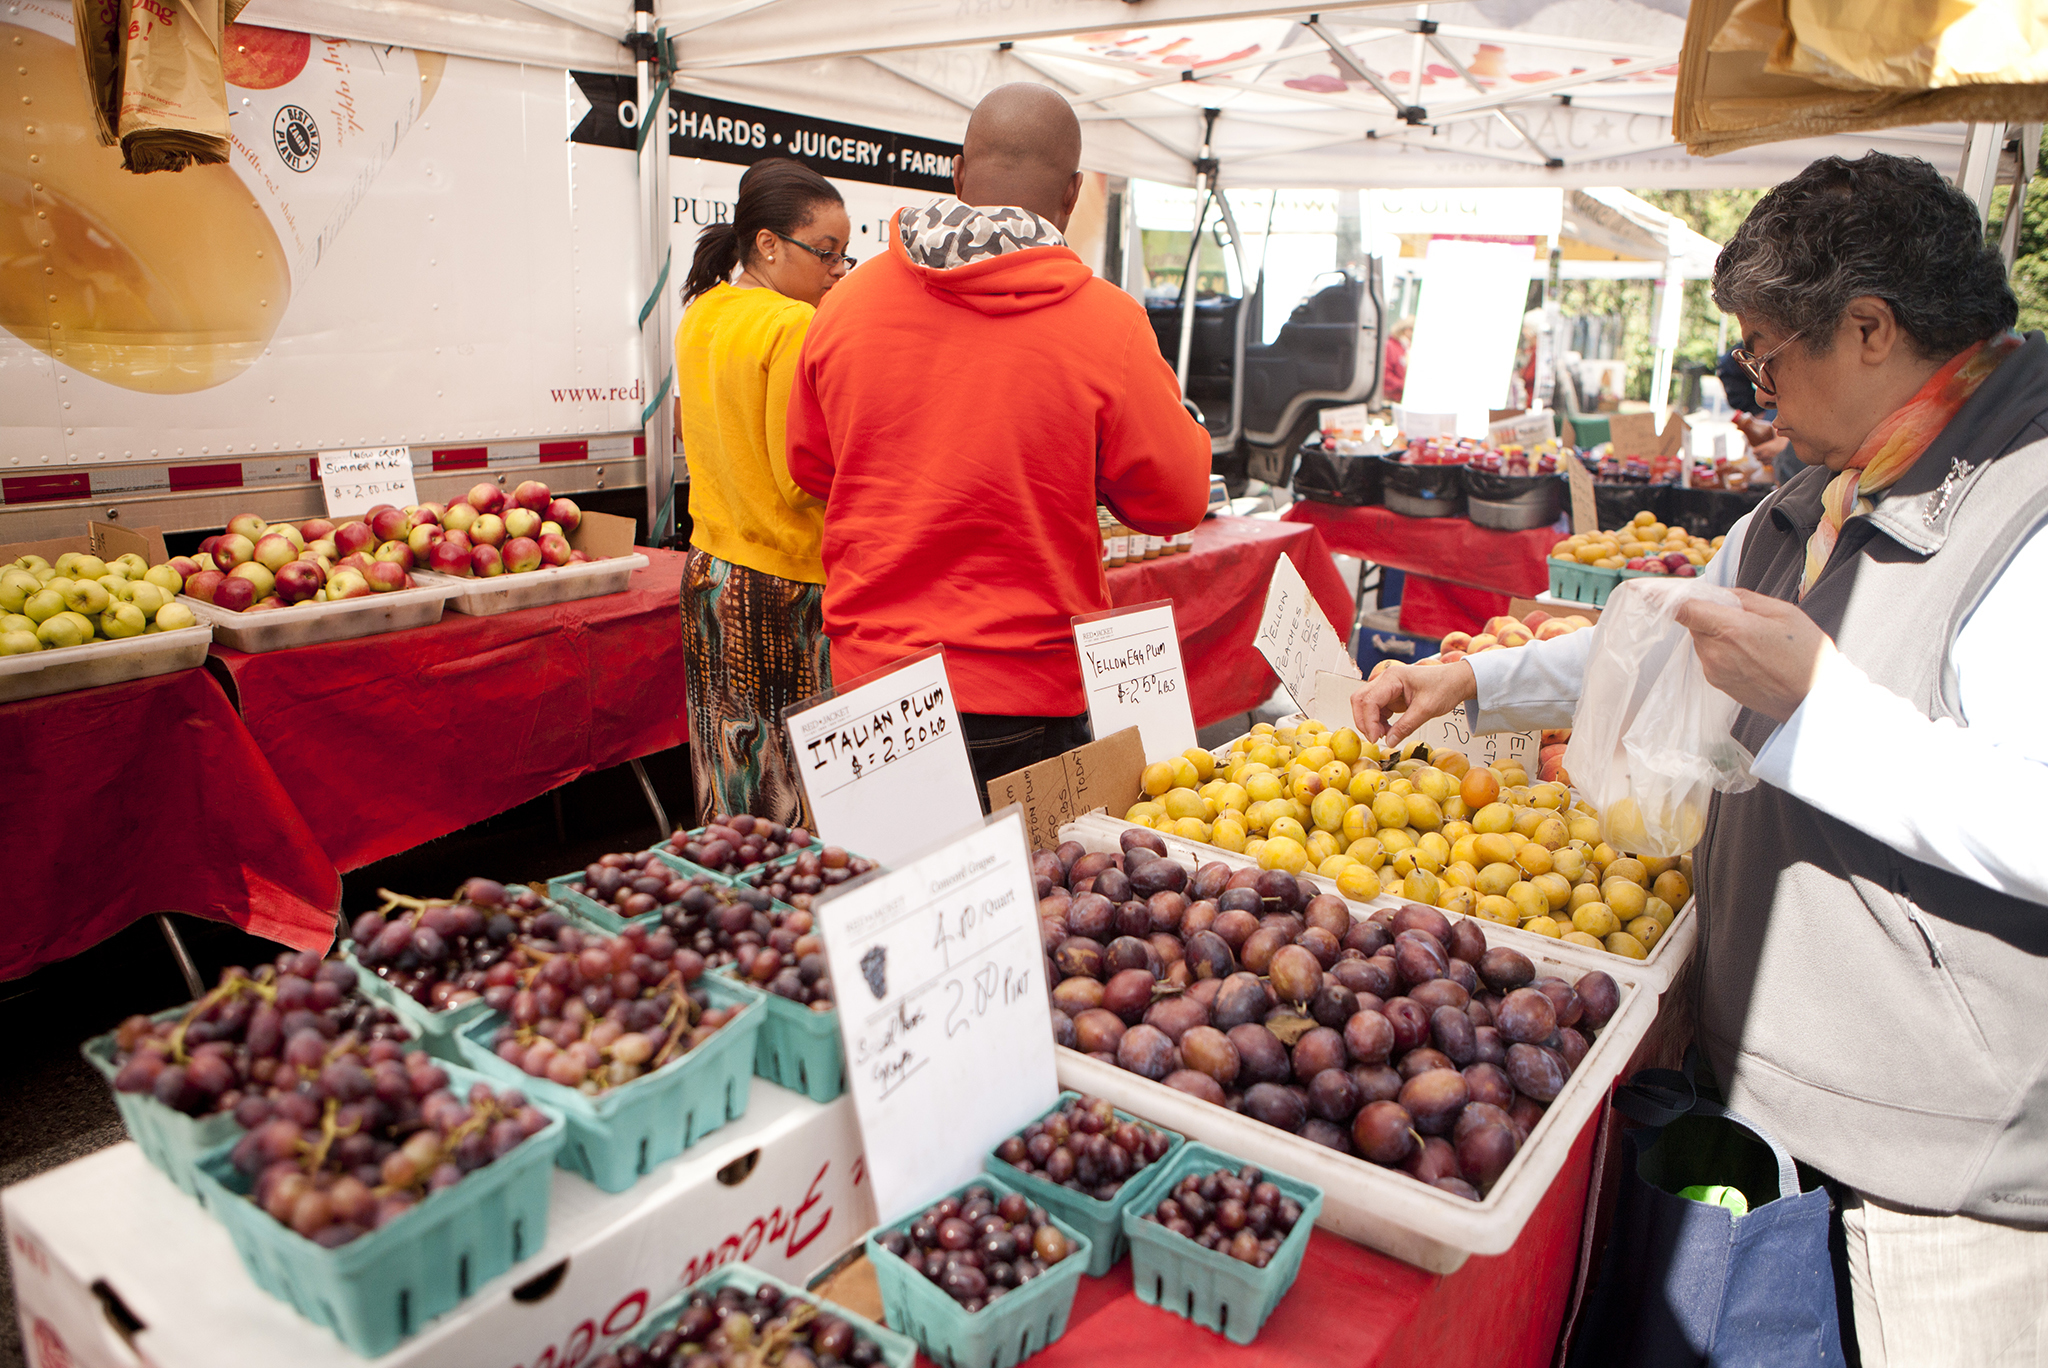 Our pick of farmers' markets